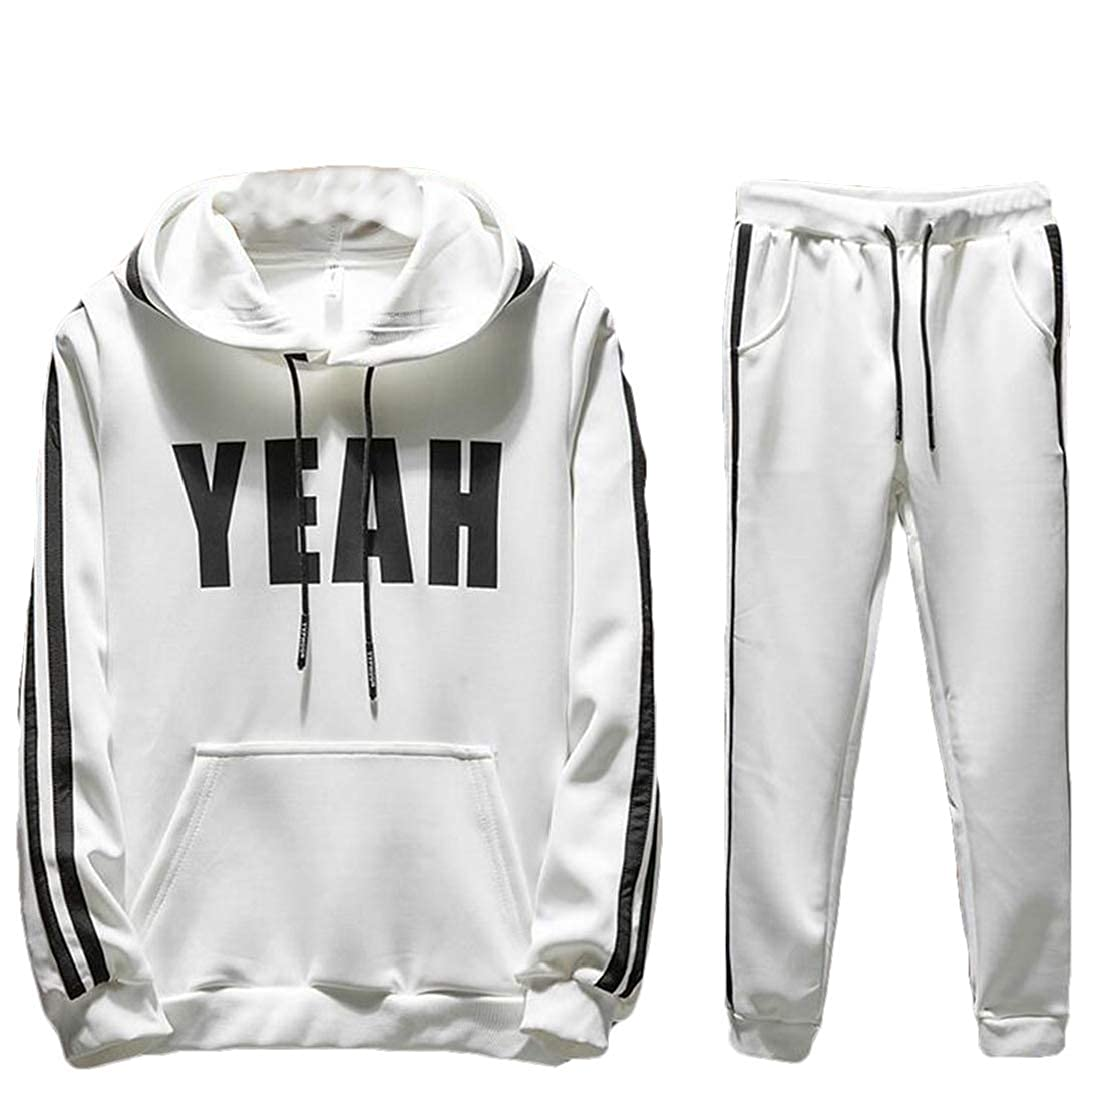 TD-CACA Mens Two-Piece Sweatshirts Workout Running Pants Sweatsuit Tracksuits Tracksuits Athleisure